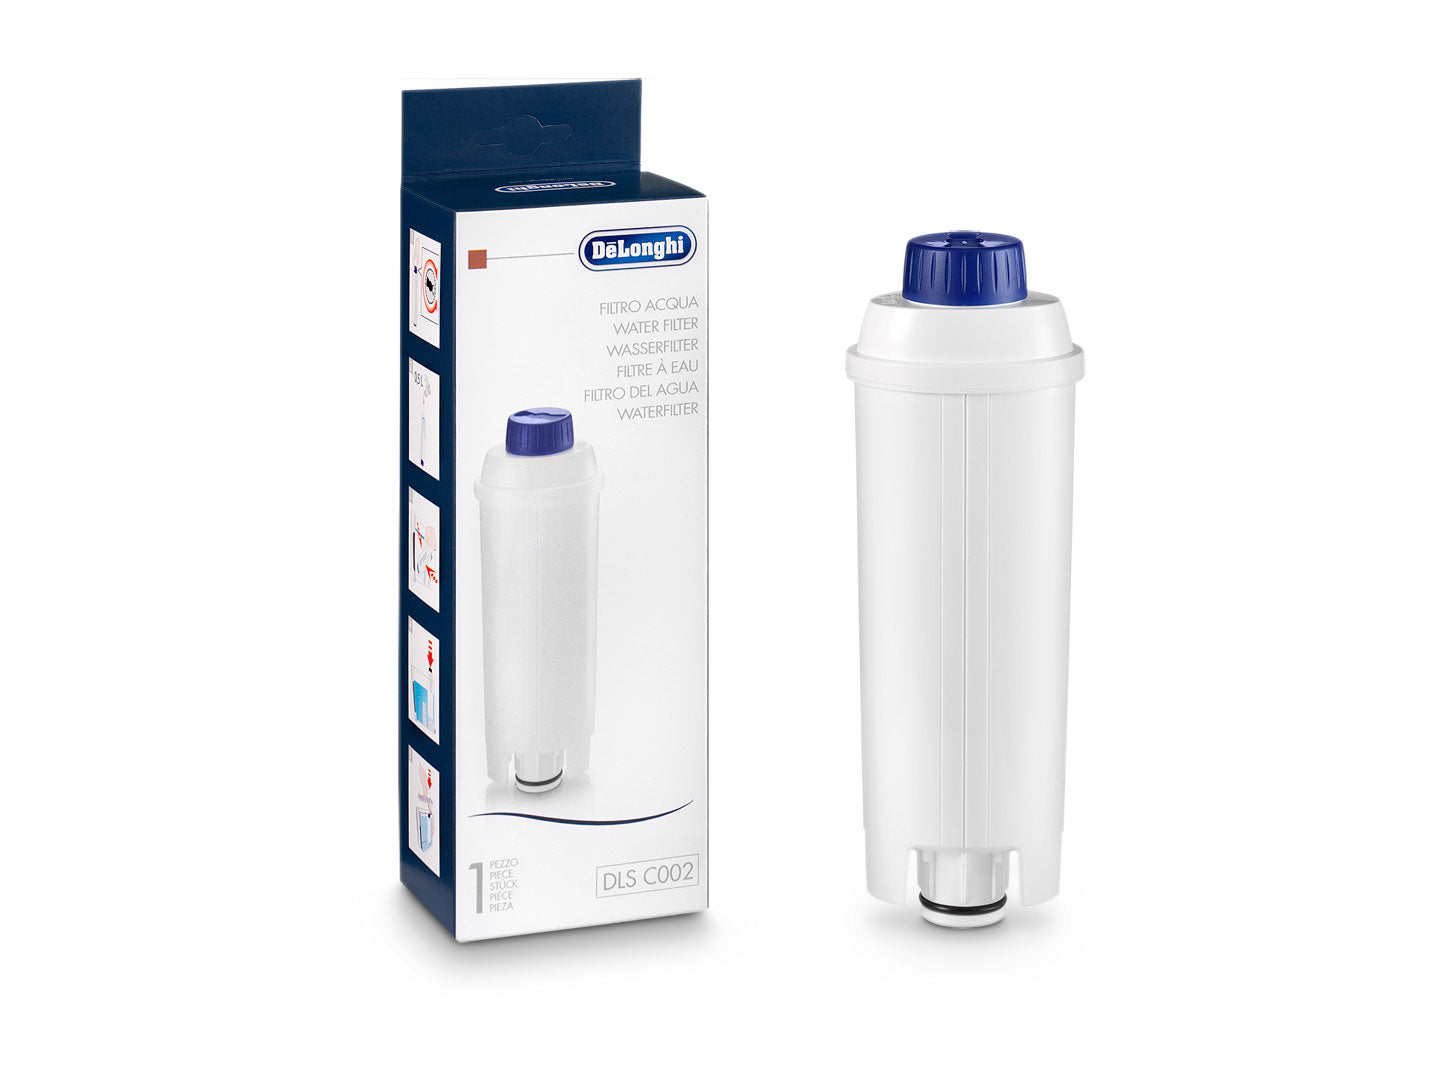 Water Filter Delonghi DLS C002 - A-SMART PTY LTD